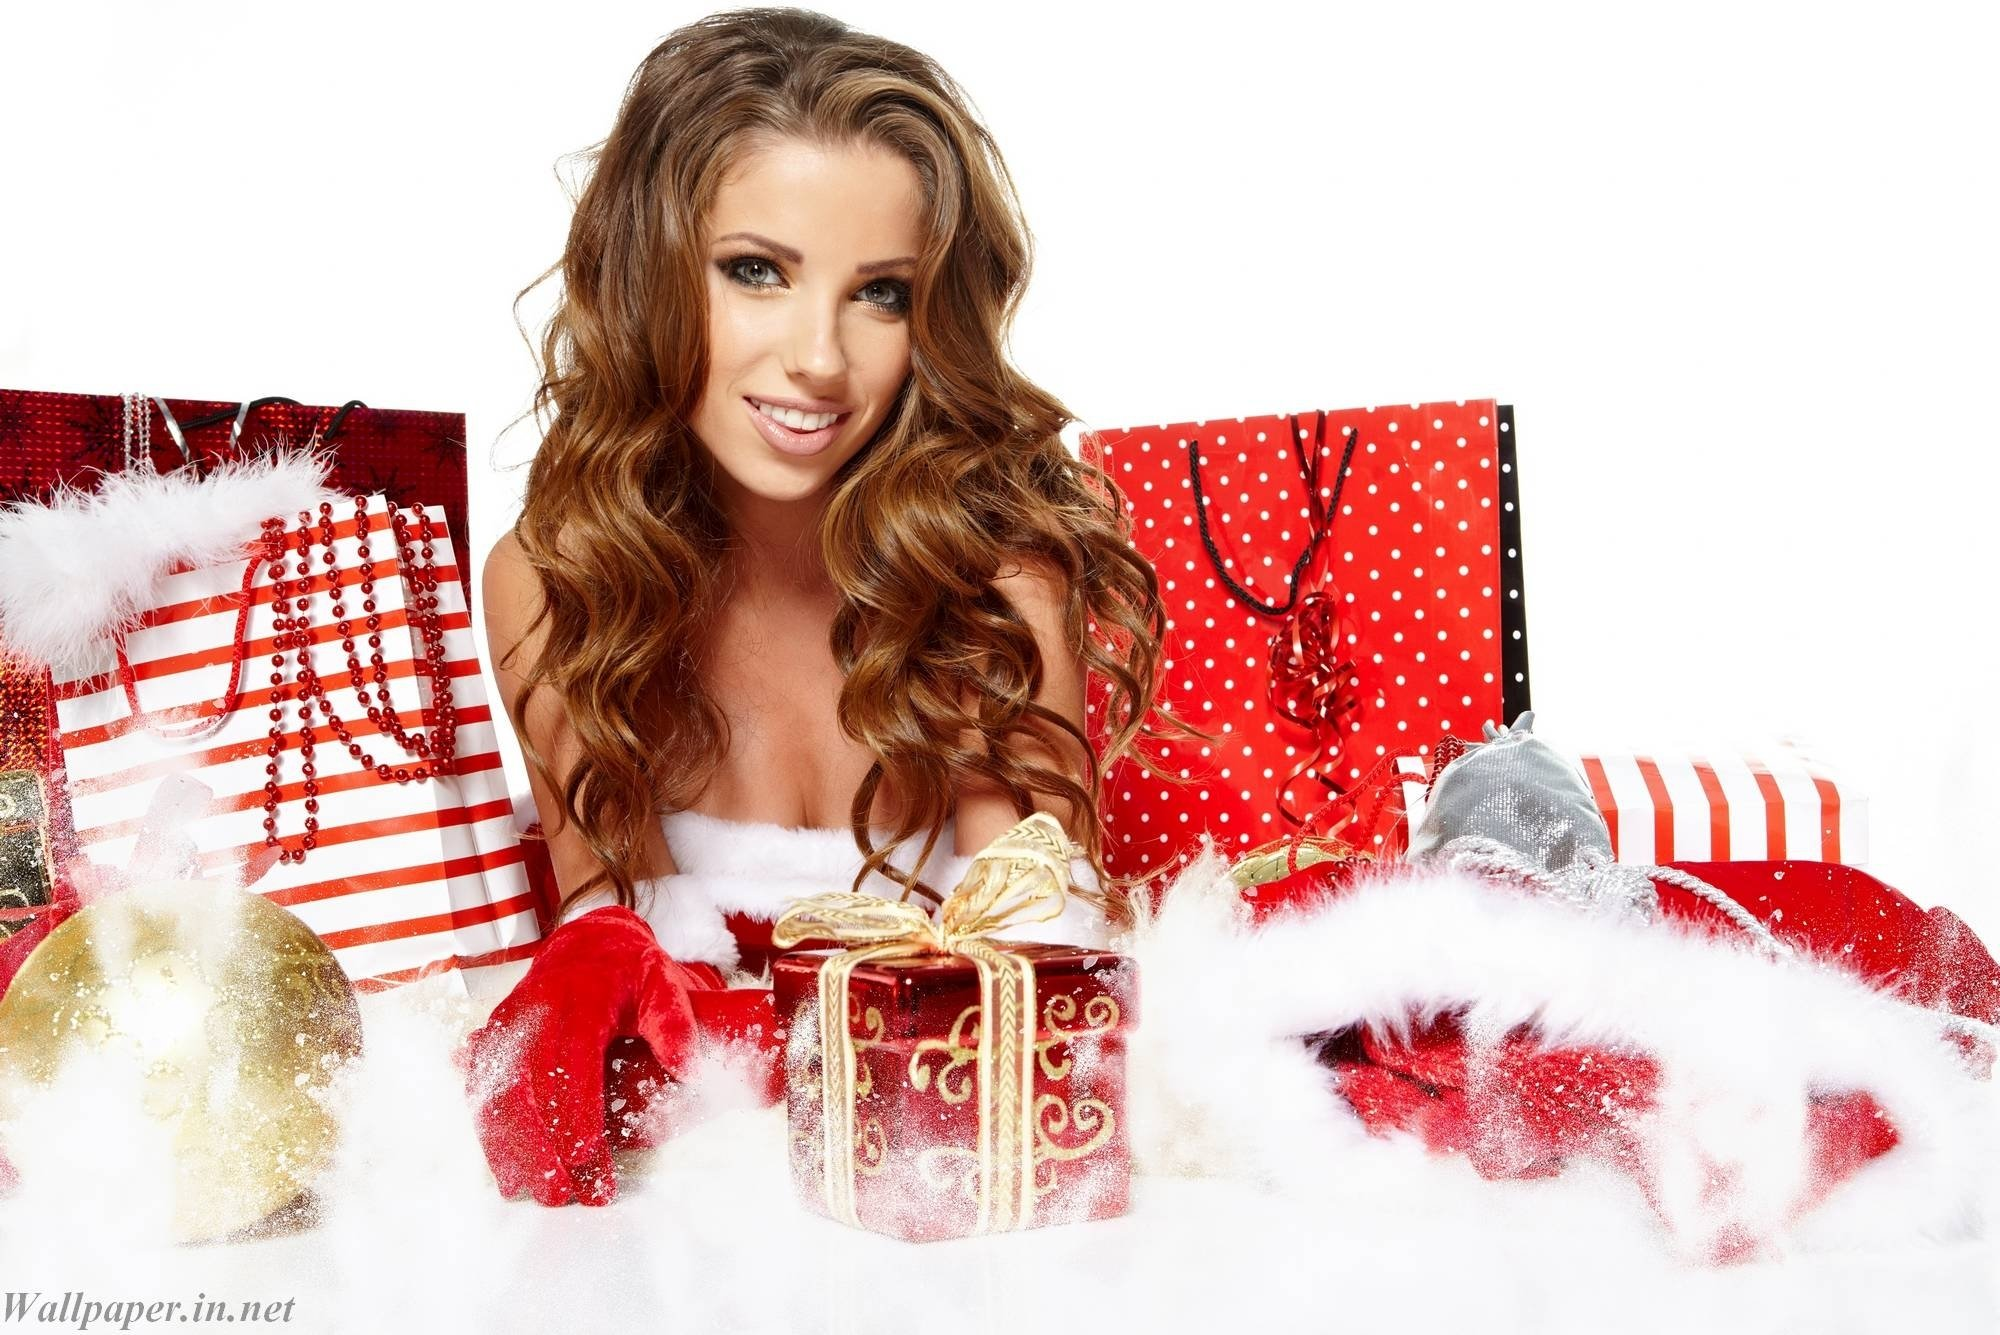 10 Gorgeous Xmas Gift Ideas For Wife gift ideas wife for christmas hd wallpapers 2021